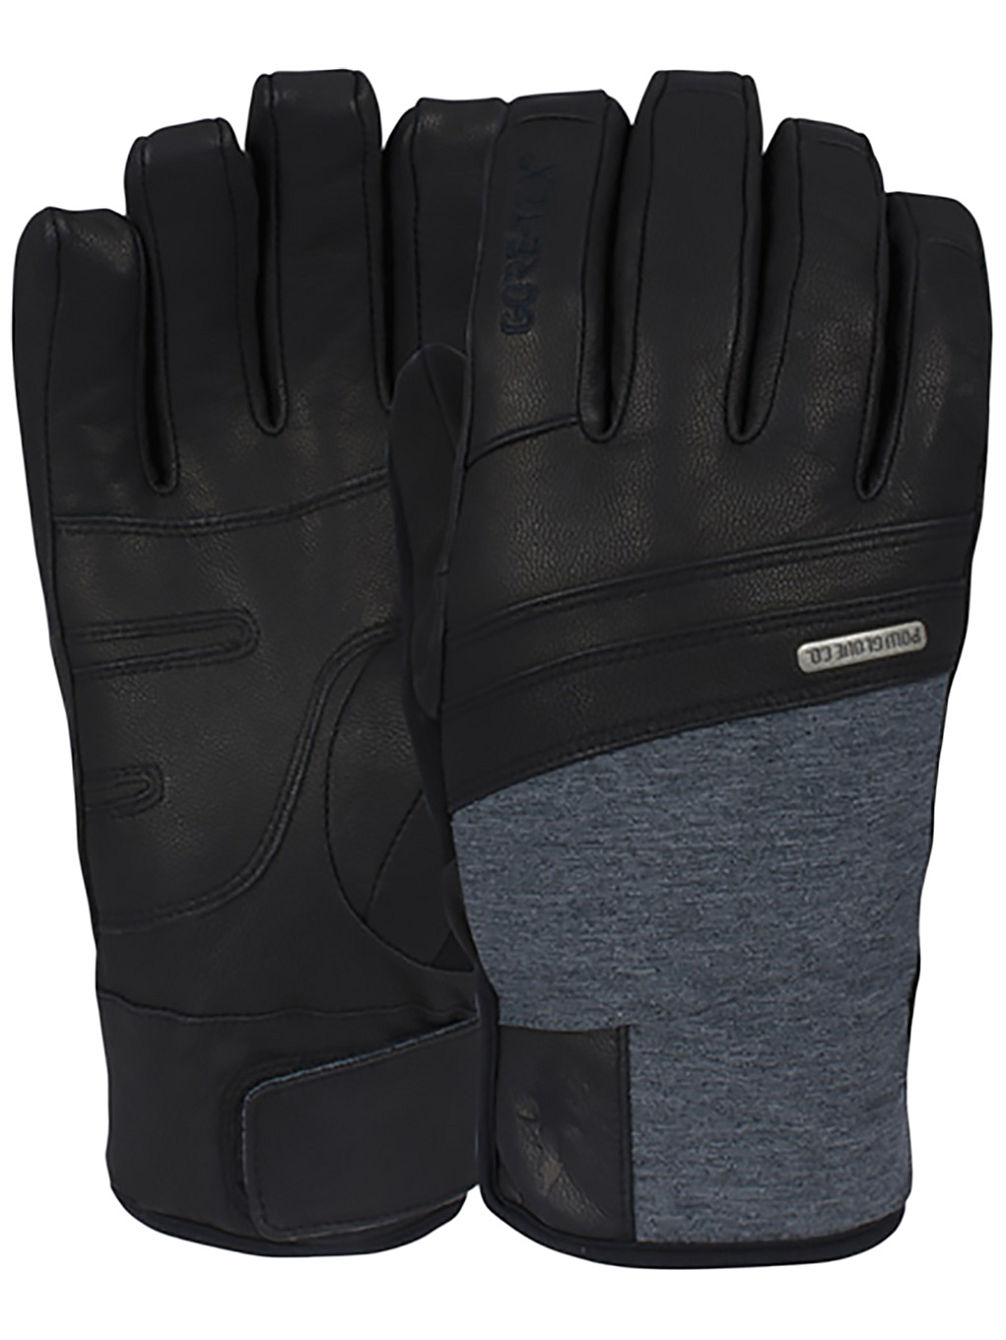 Royal Gore-Tex Gloves